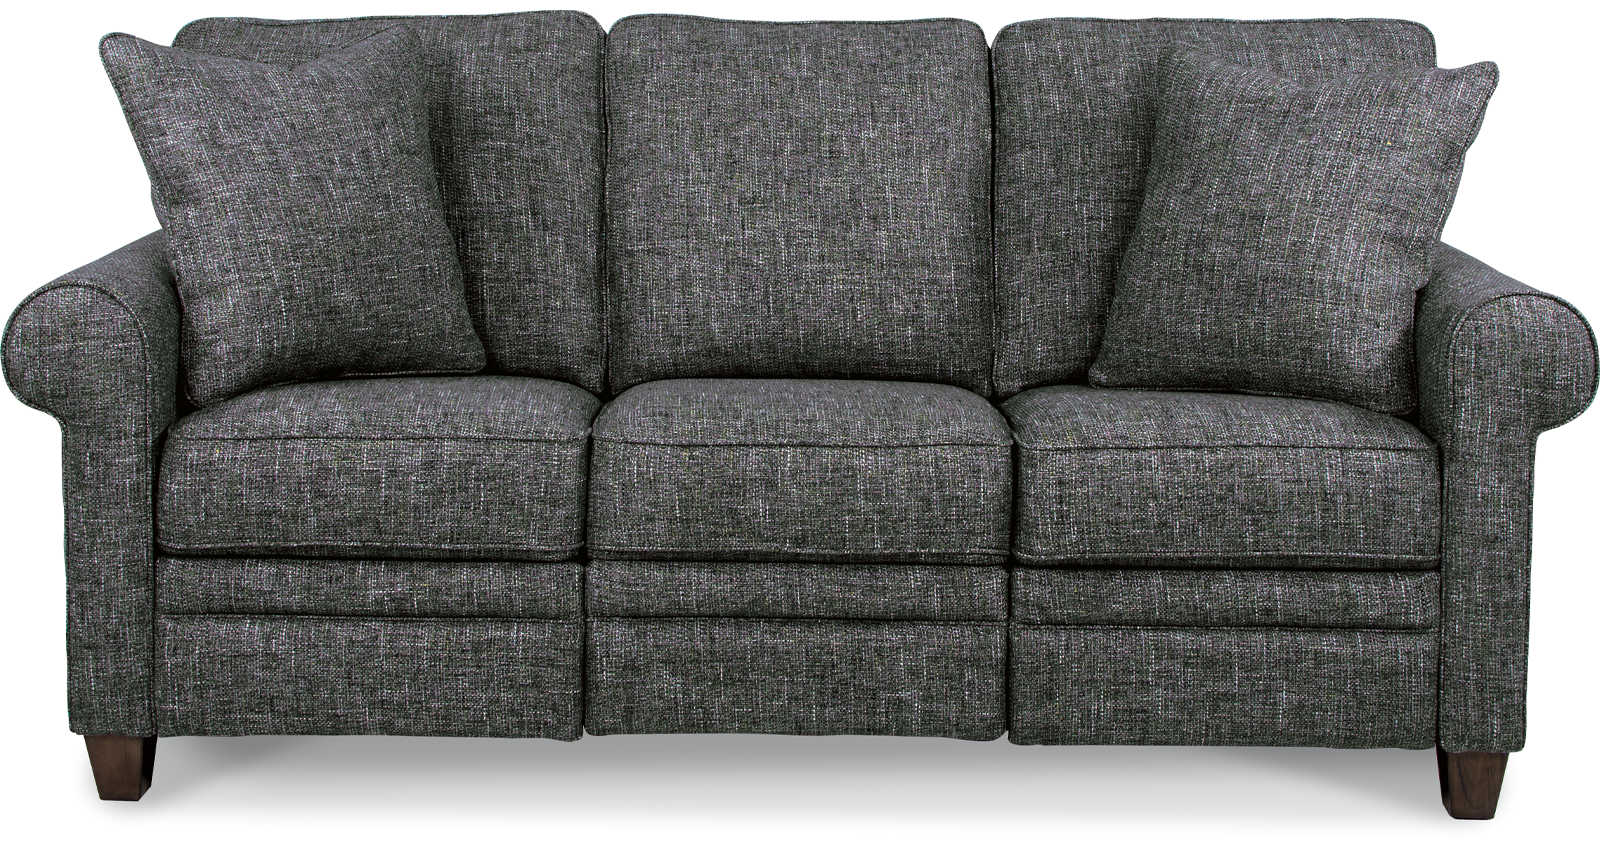 Luke duo® Reclining 2 Seat Sofa front view